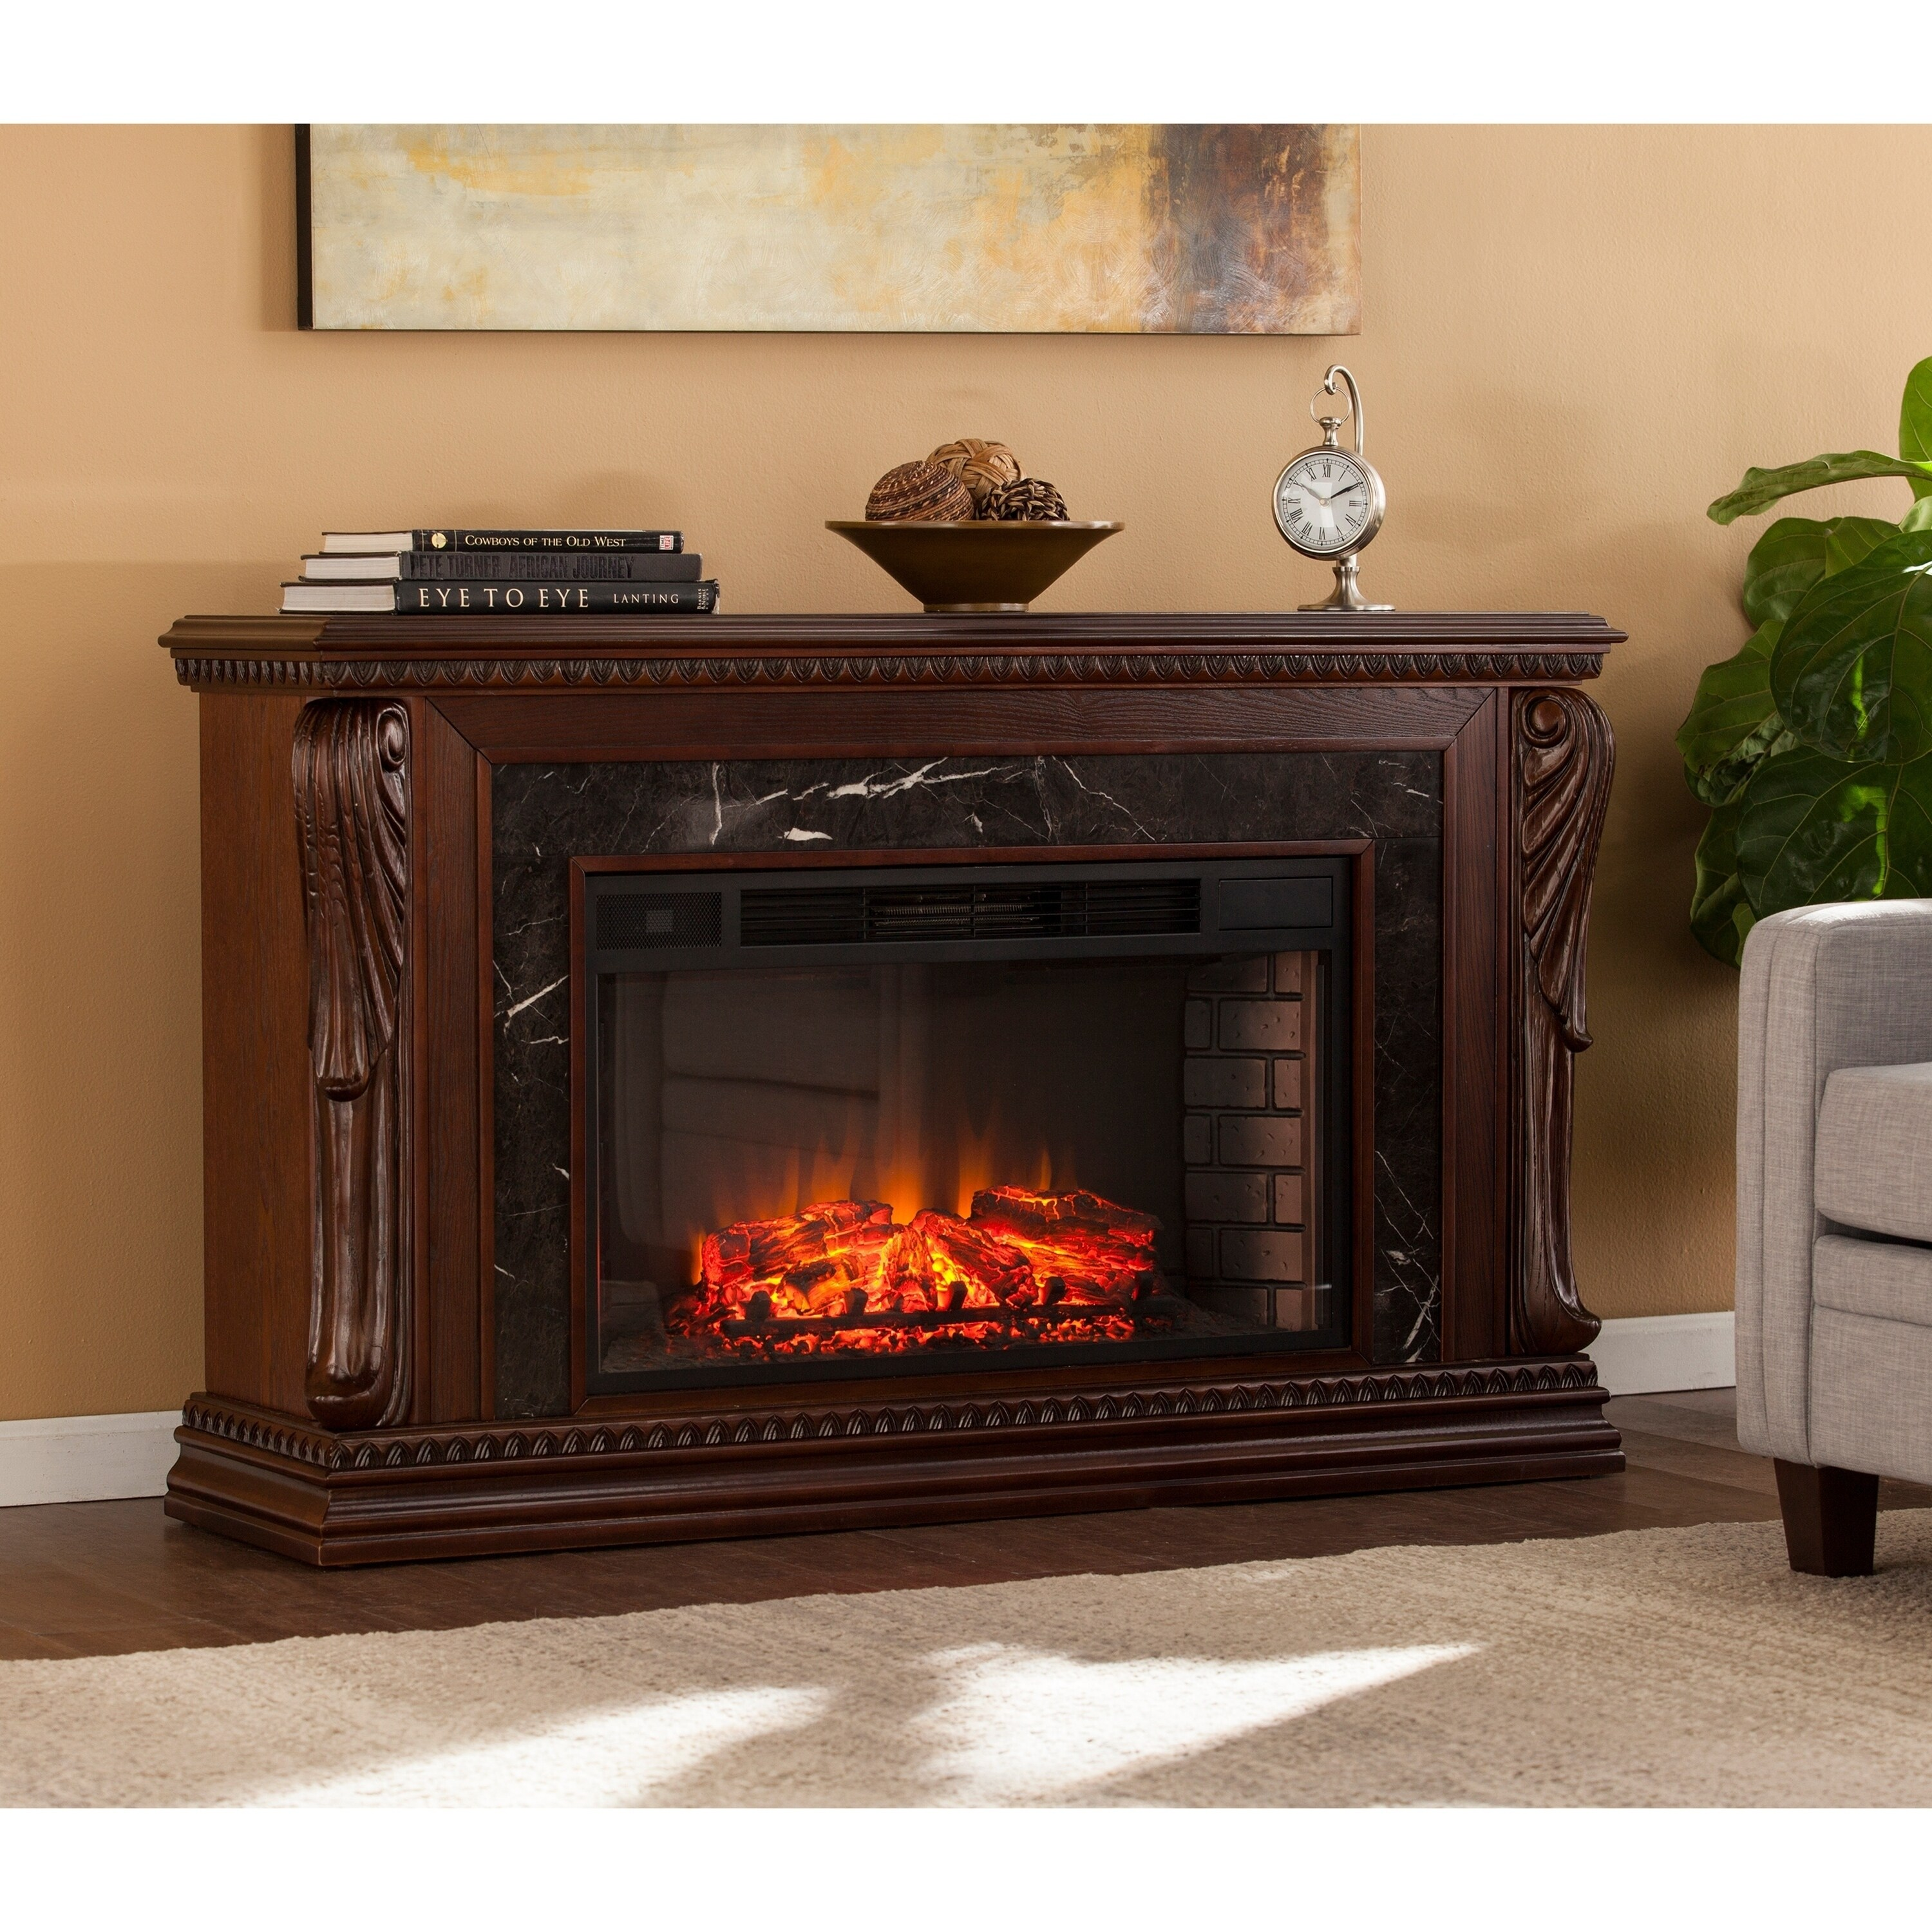 Stone Electric Fireplace Tv Stand Buy Fireplaces Online At Overstock Our Best Decorative